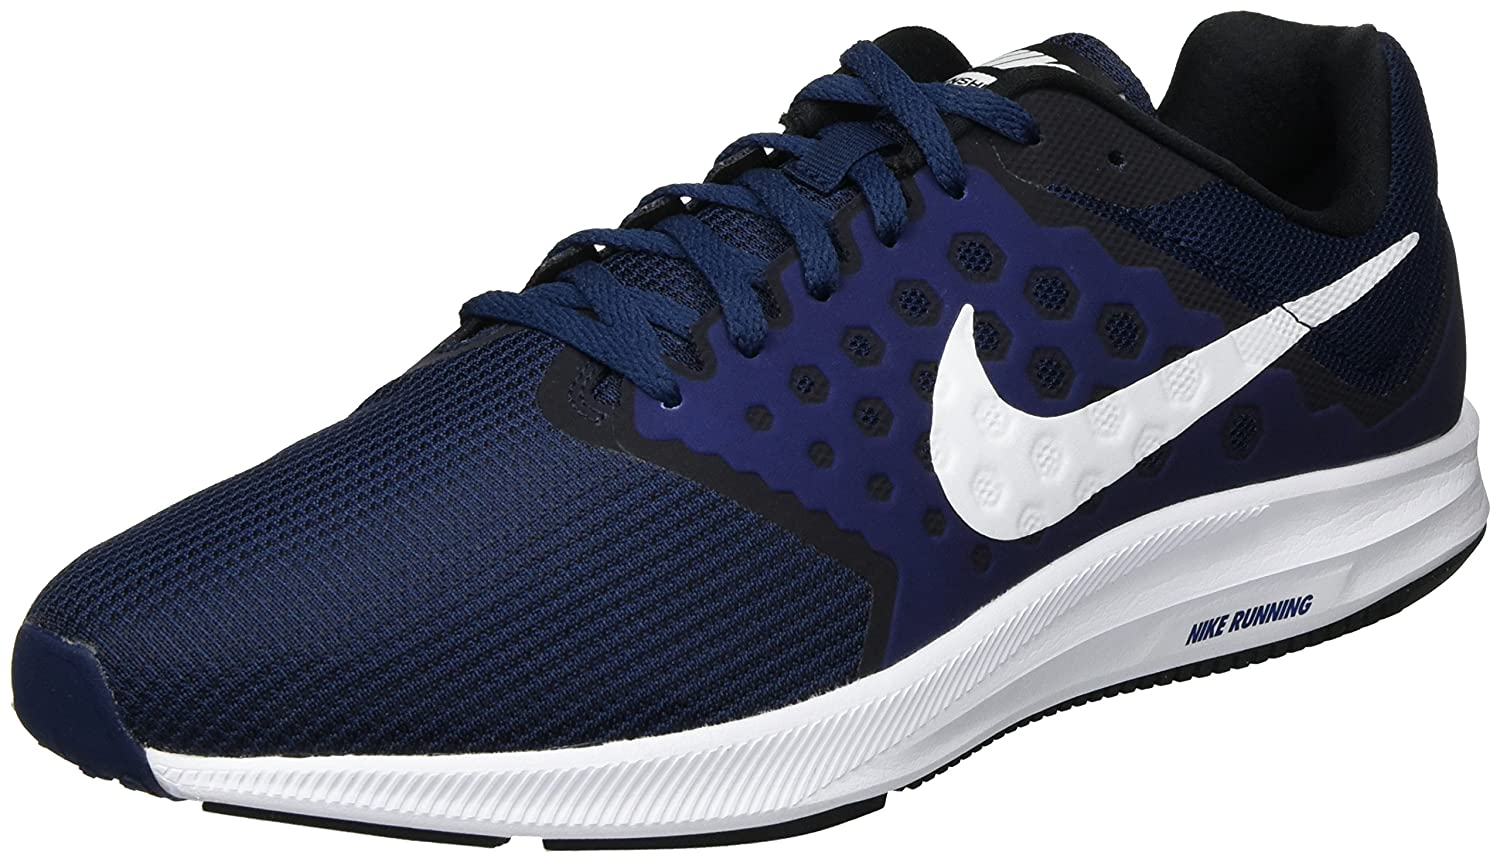 Nike Downshifter 7, Zapatillas de Running para Hombre 42 EU|Azul (Midnight Navy/White/Dark Obsidian/Black)